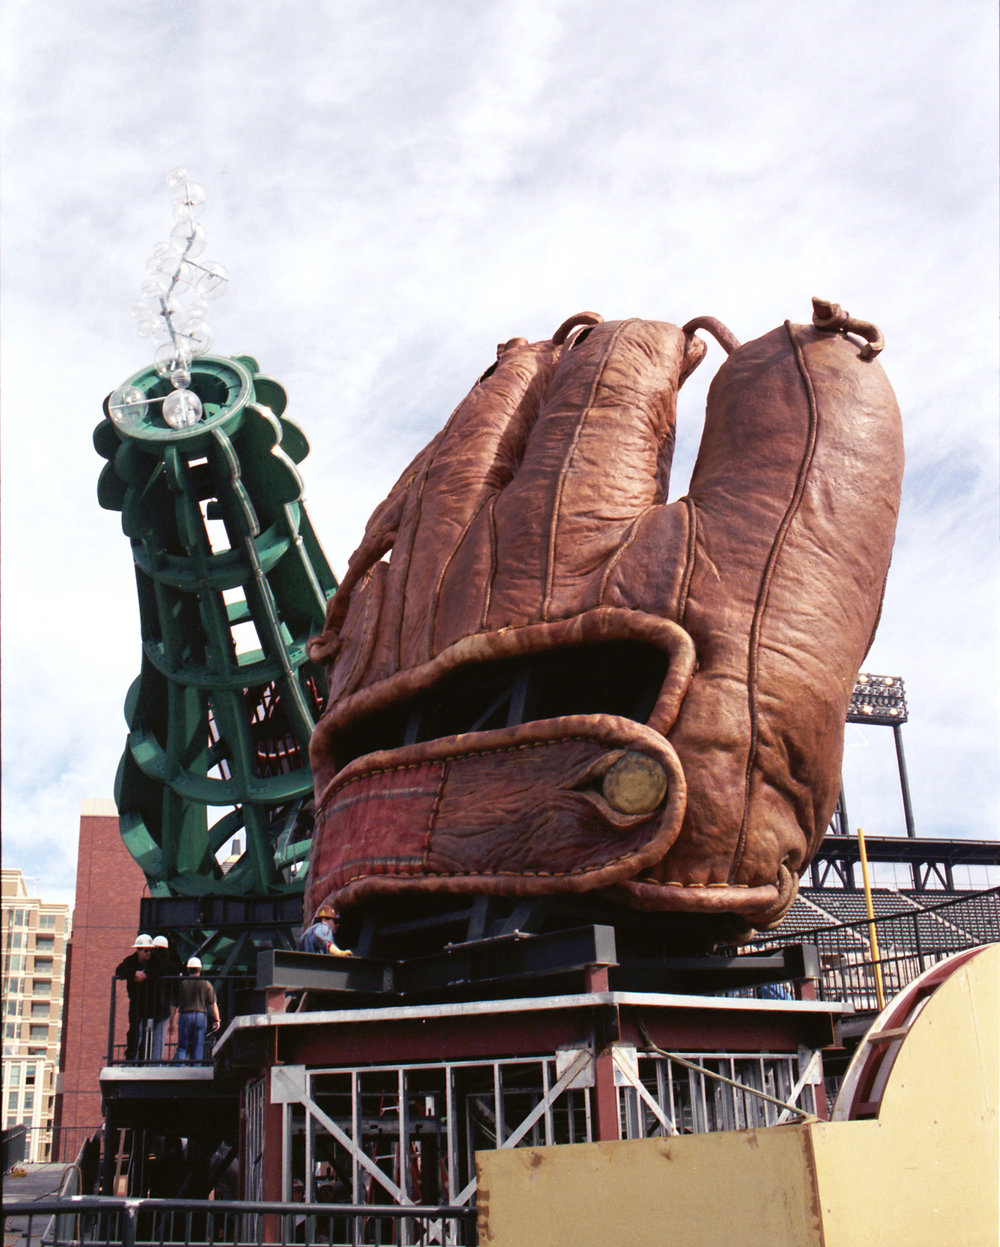 Installation at AT&T Park of the Giant Baseball Mitt